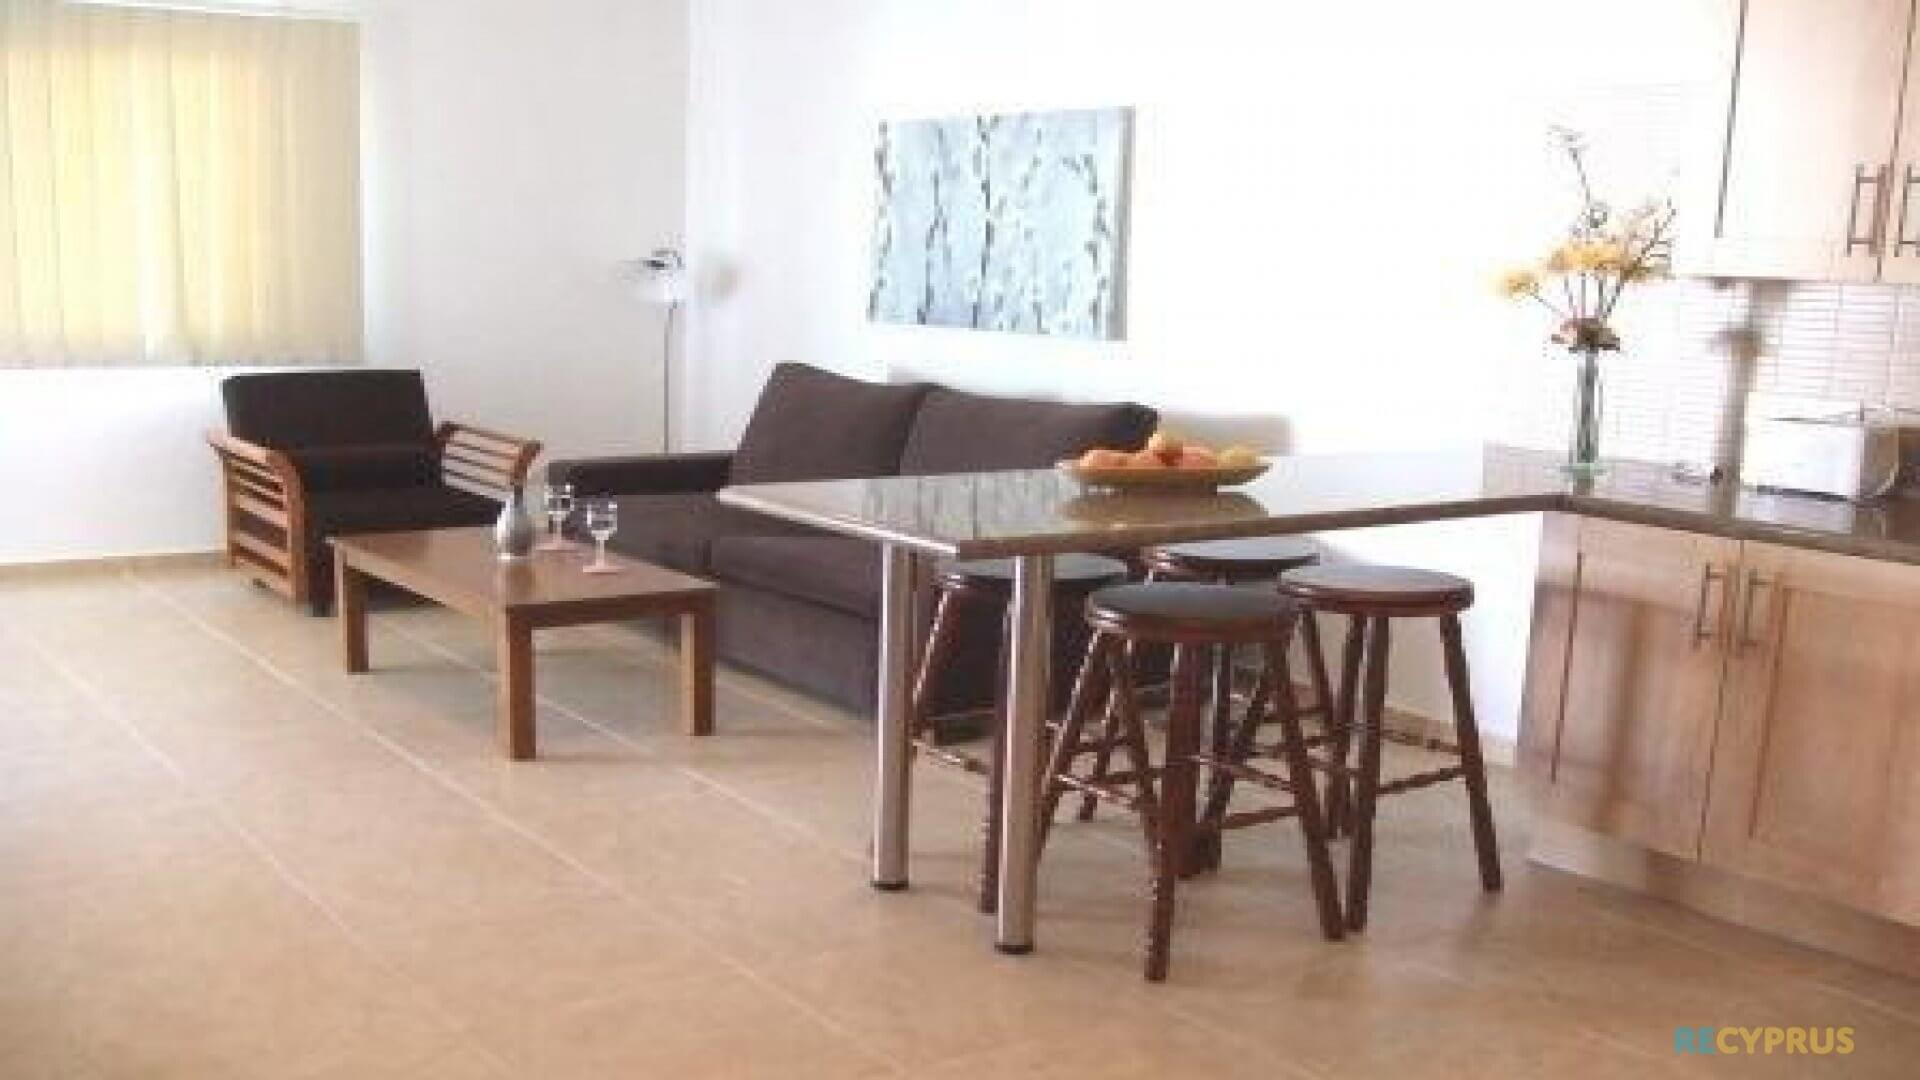 Apartment for sale Kapparis Famagusta Cyprus 2 3458